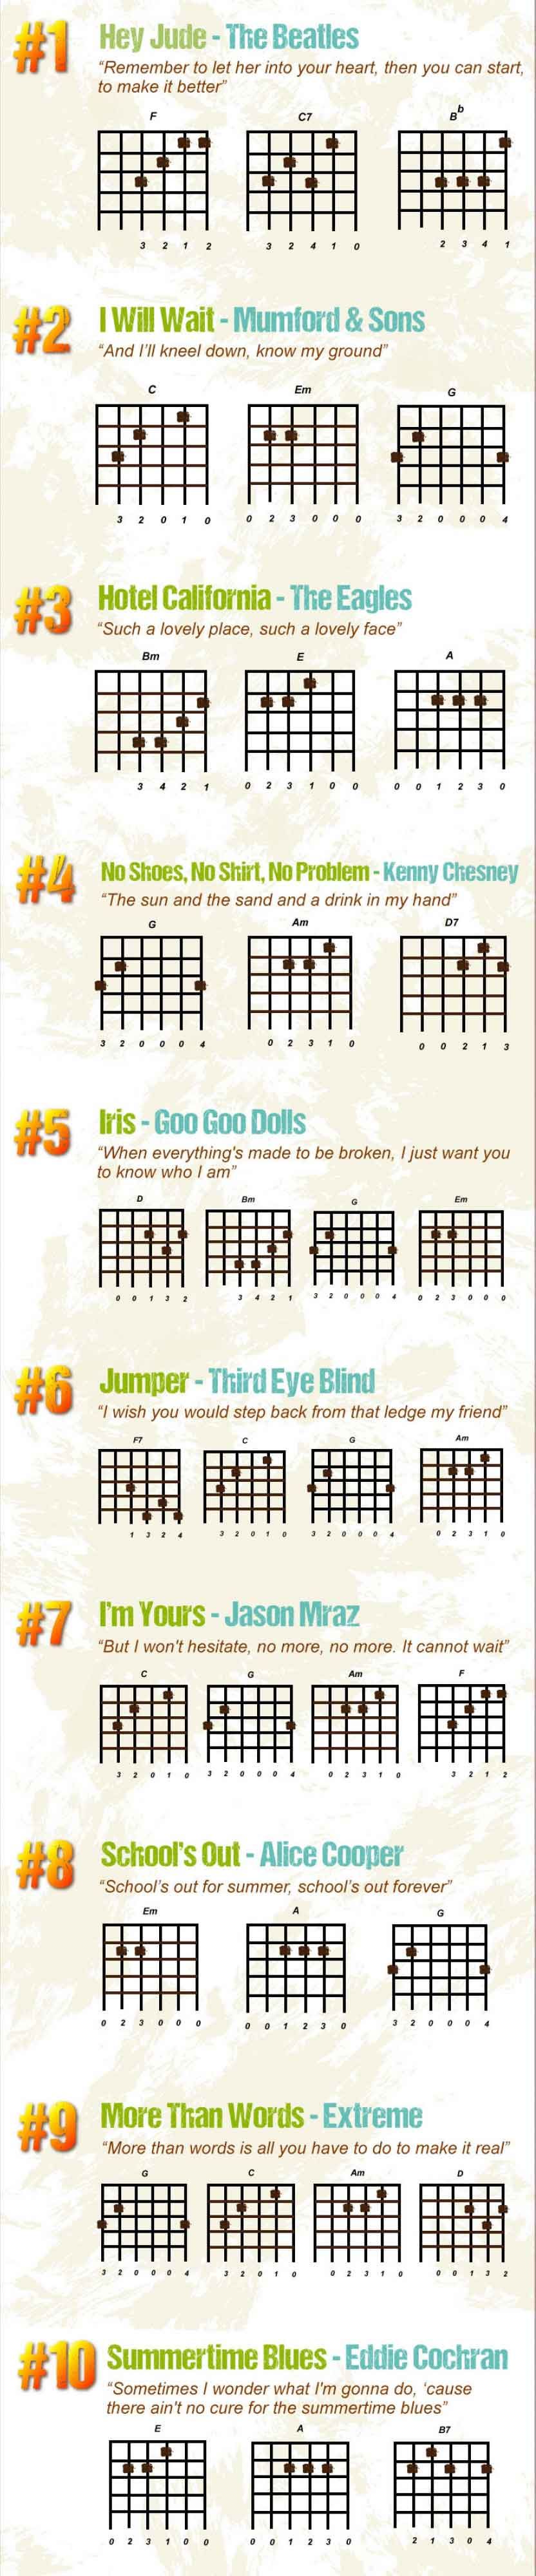 10 Guitar Songs For Beginners Tab And Chord